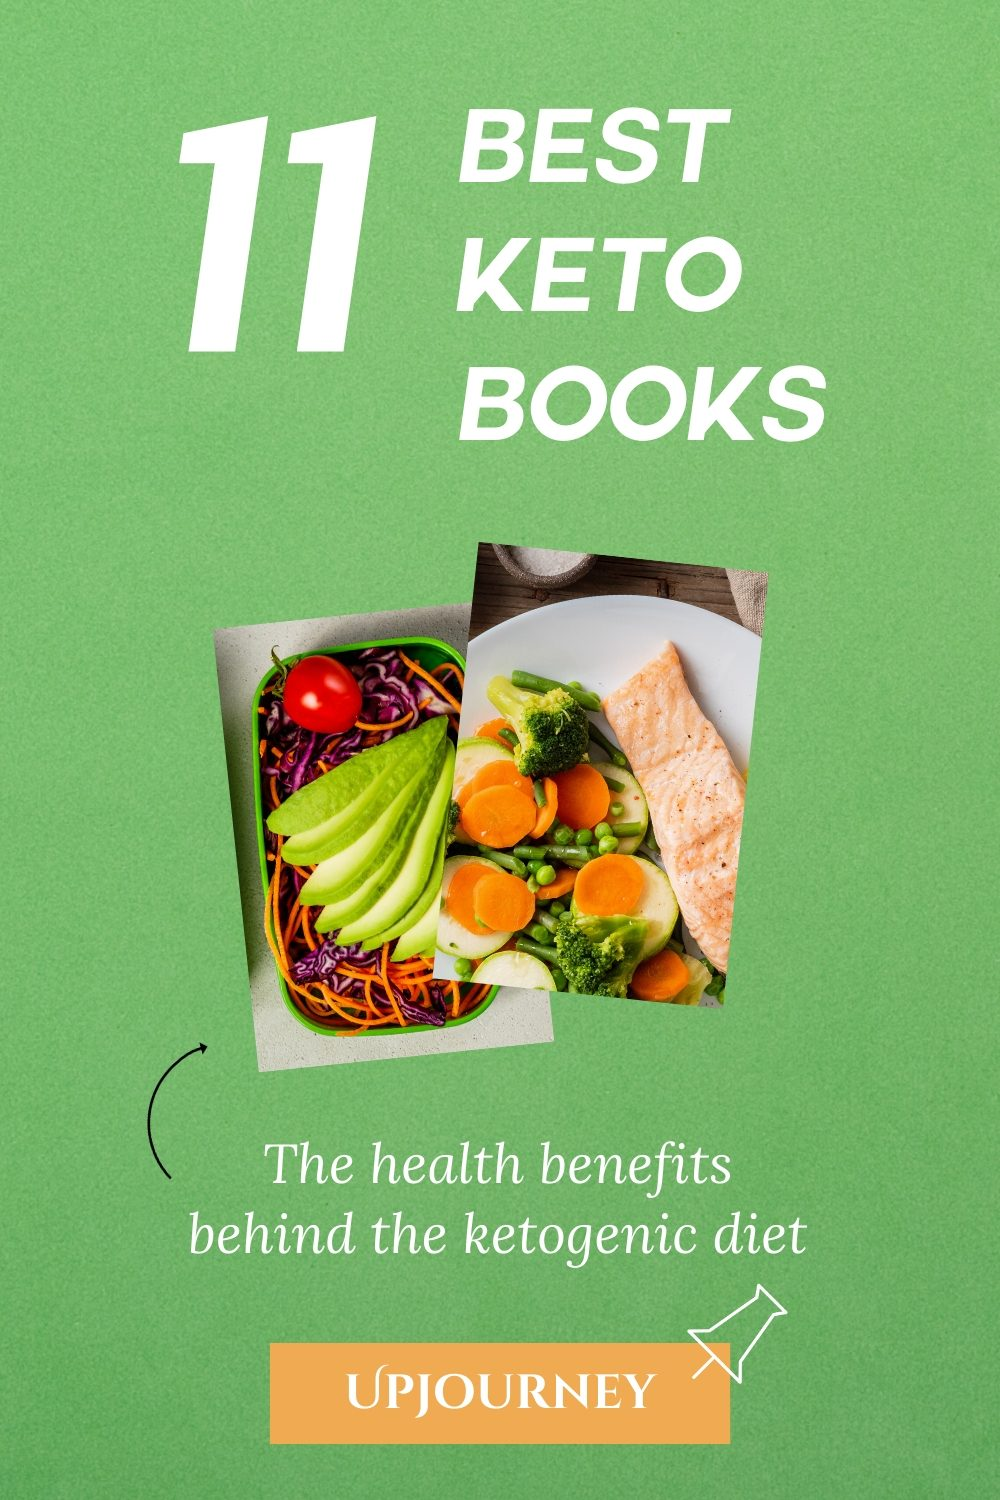 Best Keto Books